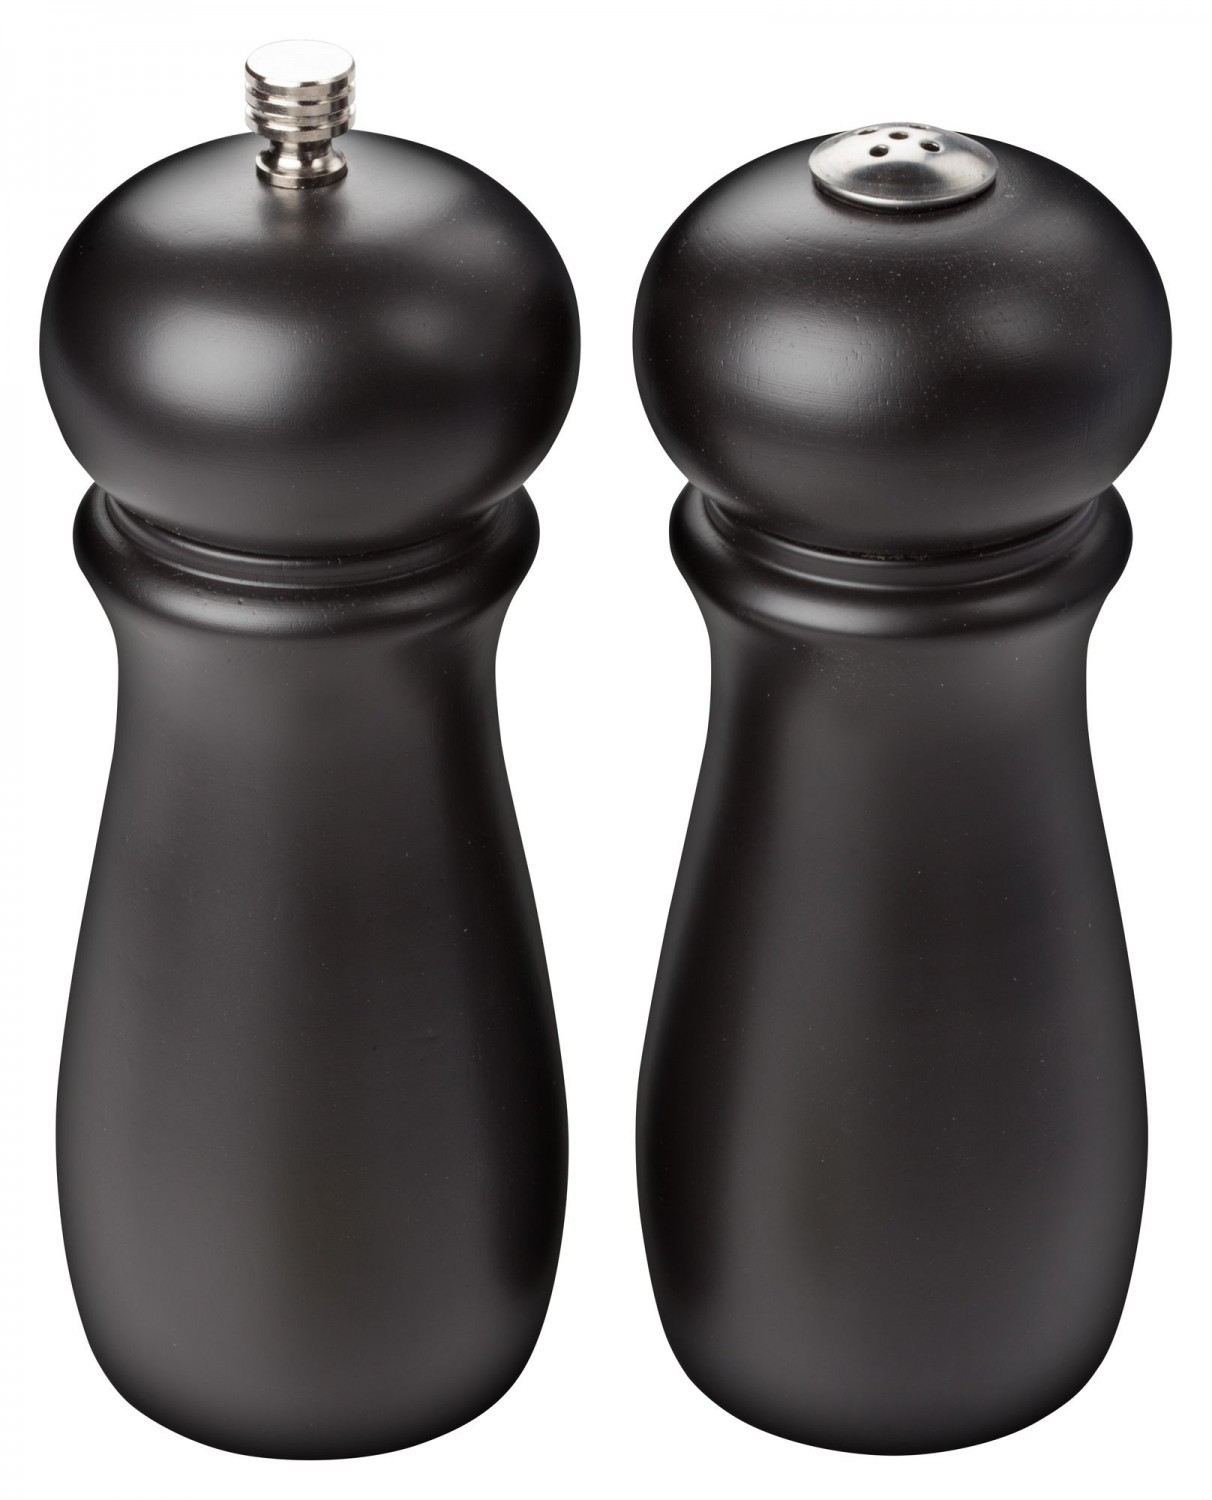 Winco SP-612 Black Rubberwood Salt Shaker and Pepper Grinder